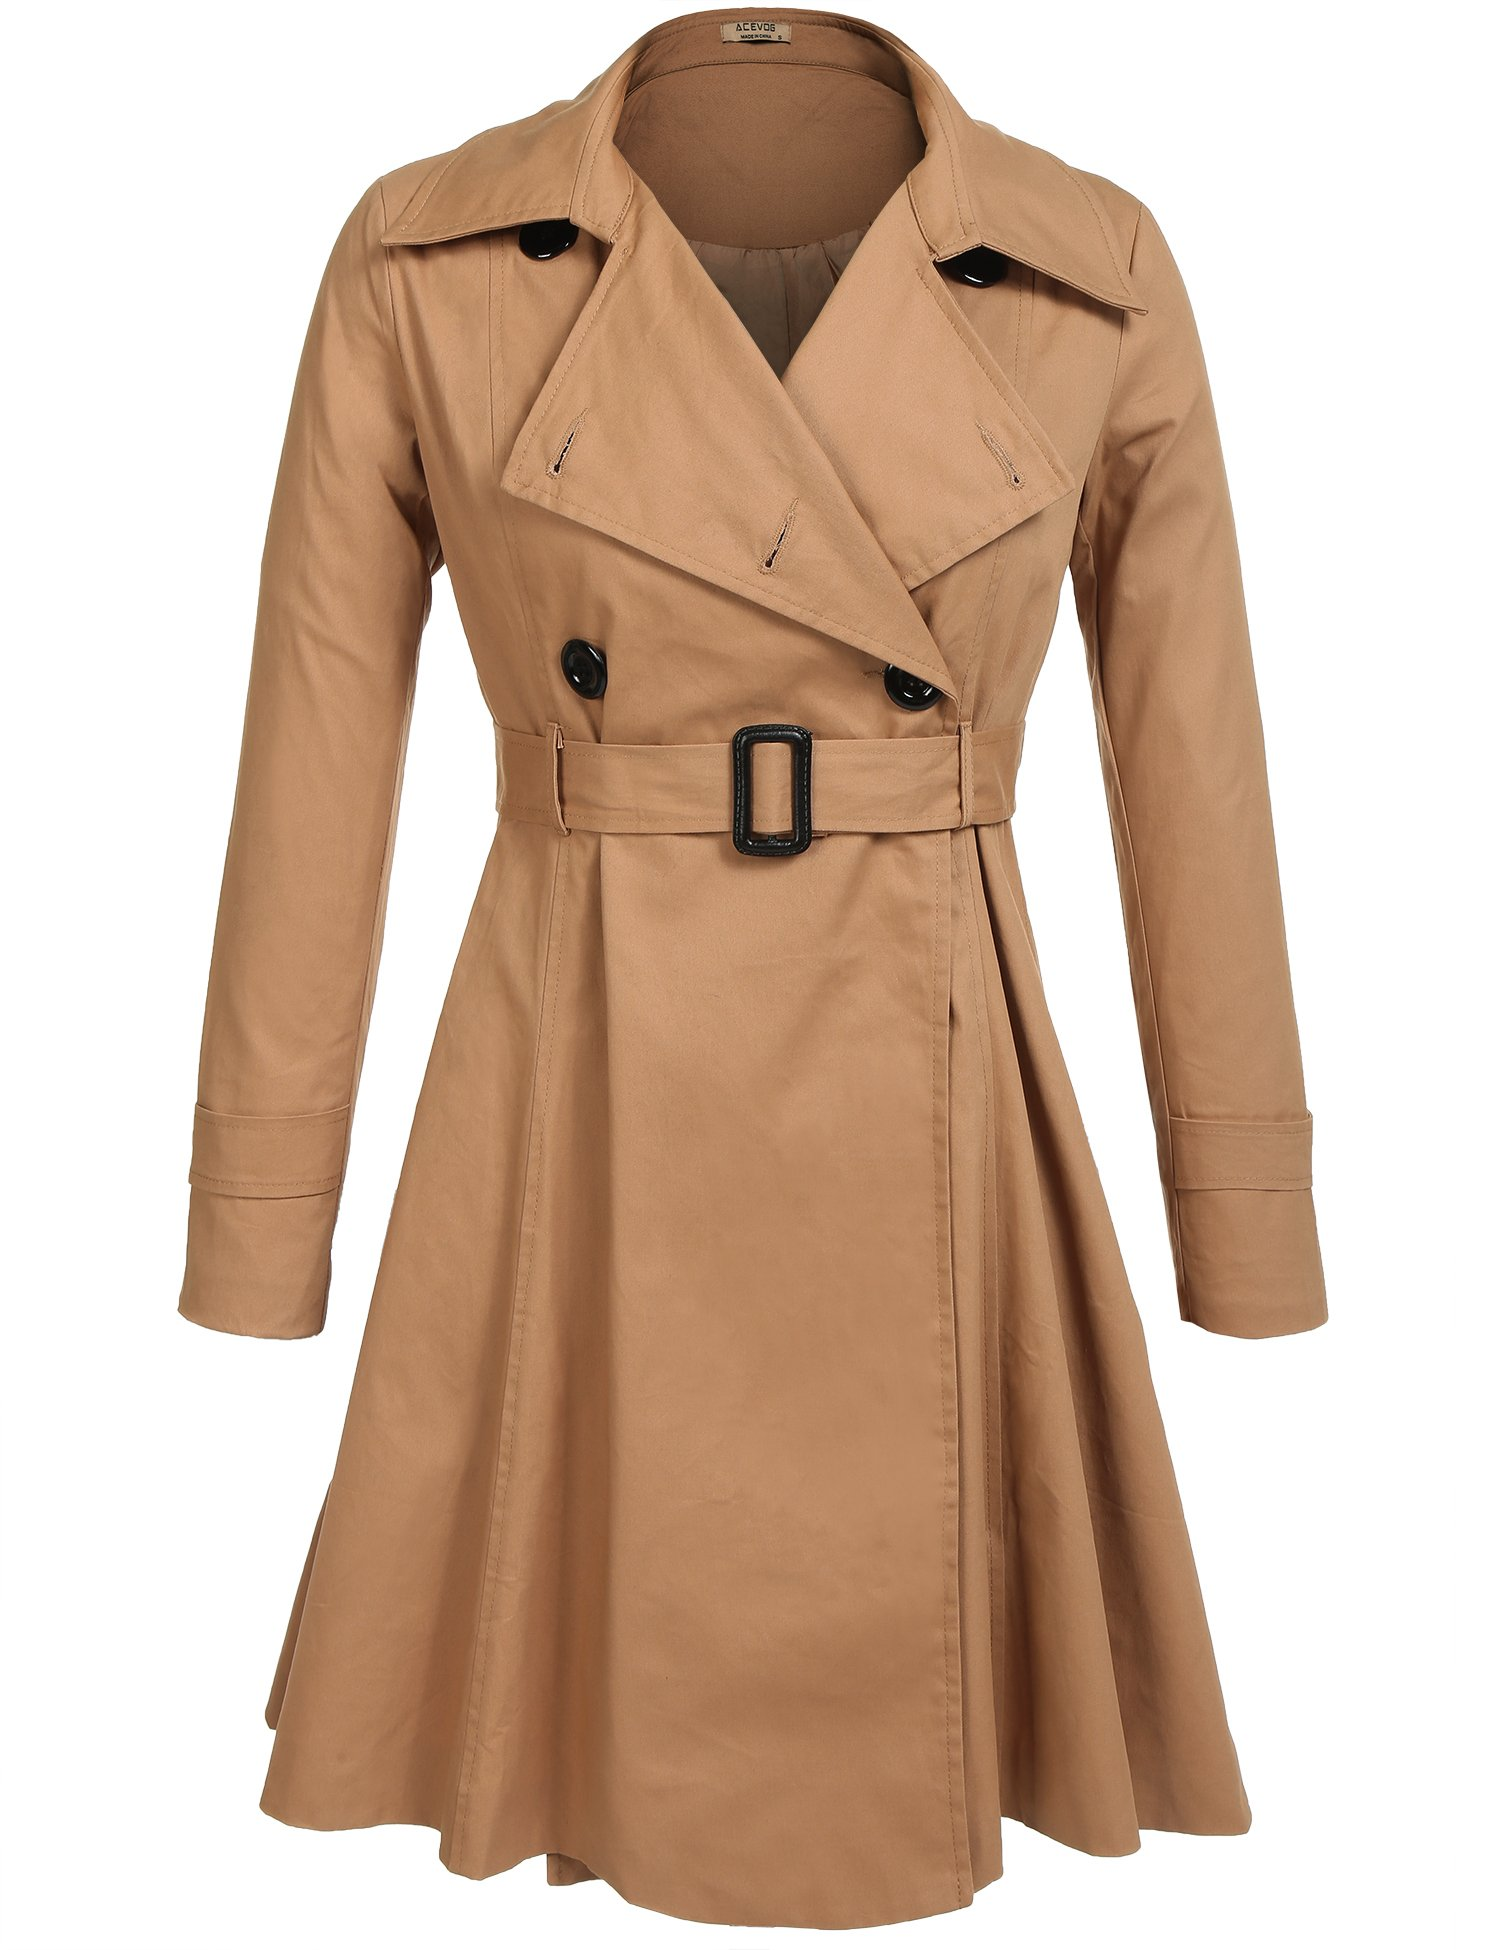 GEESENSS Women's Casual Notched Lapel Double Breasted Belted Long Trench Coat,Khaki,Medium